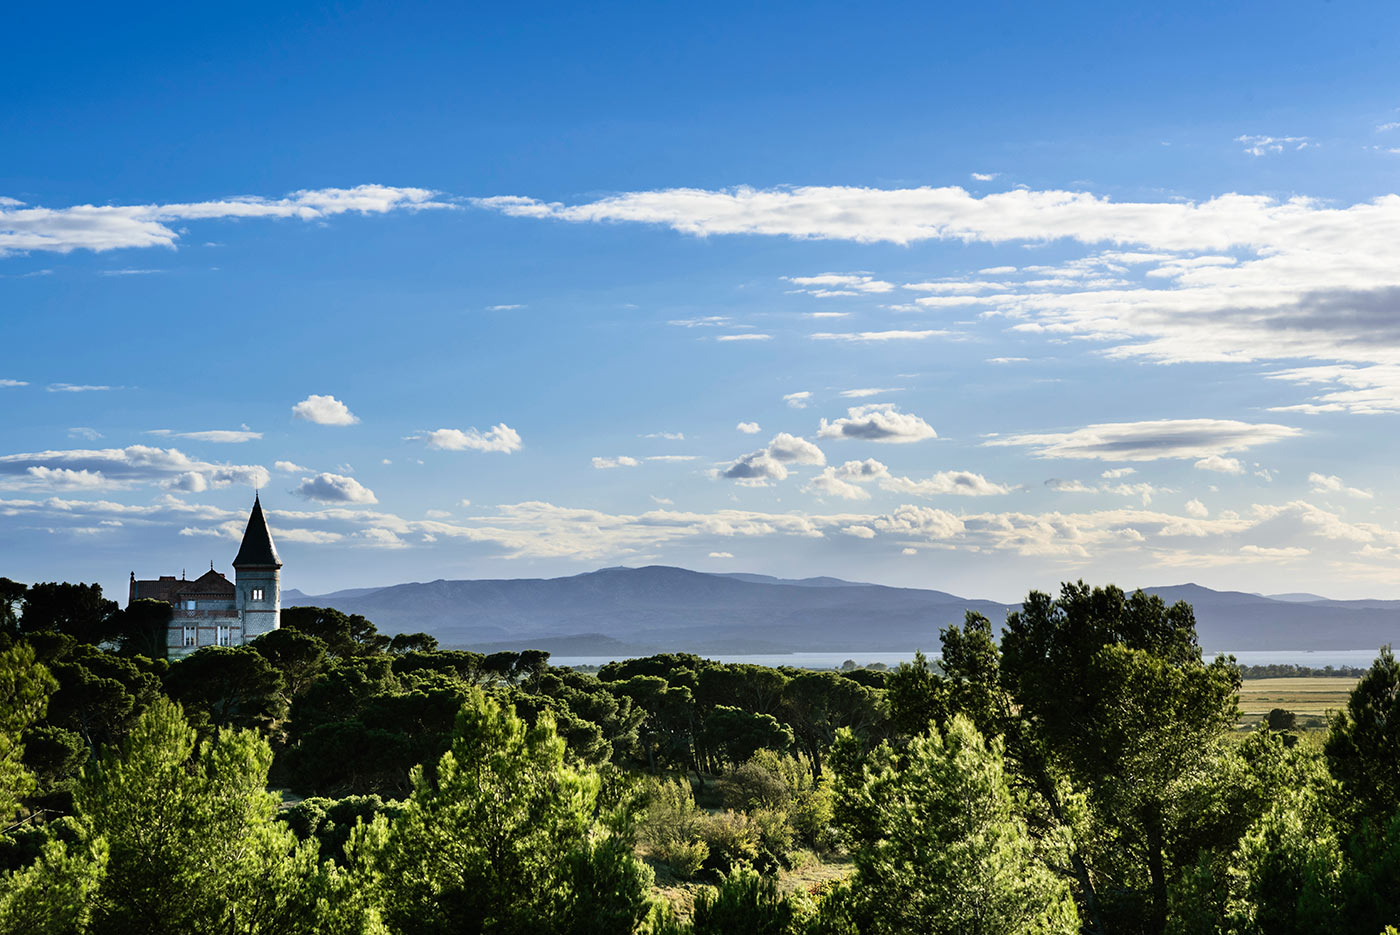 The tower of Chateau Capitoul and views of Etang de Bages in Languedoc